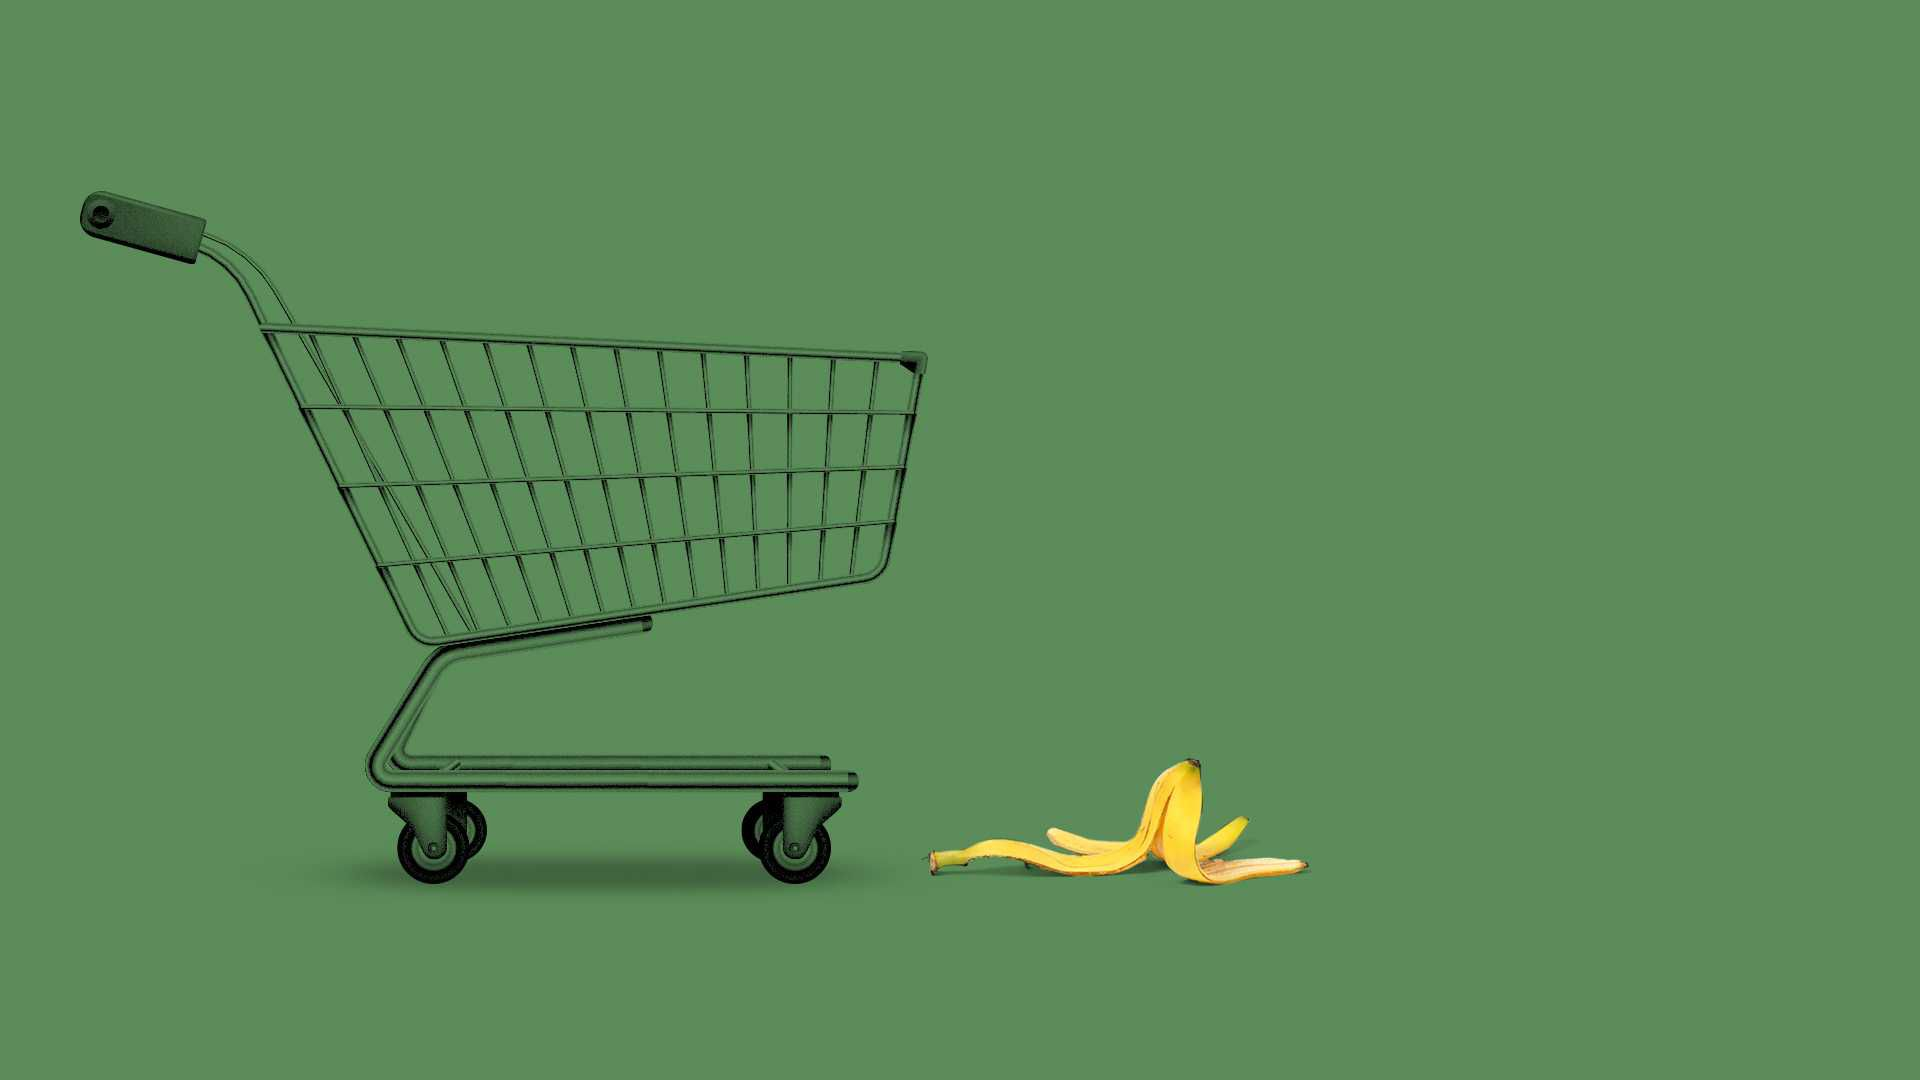 Shopping cart approaching a banana peel.